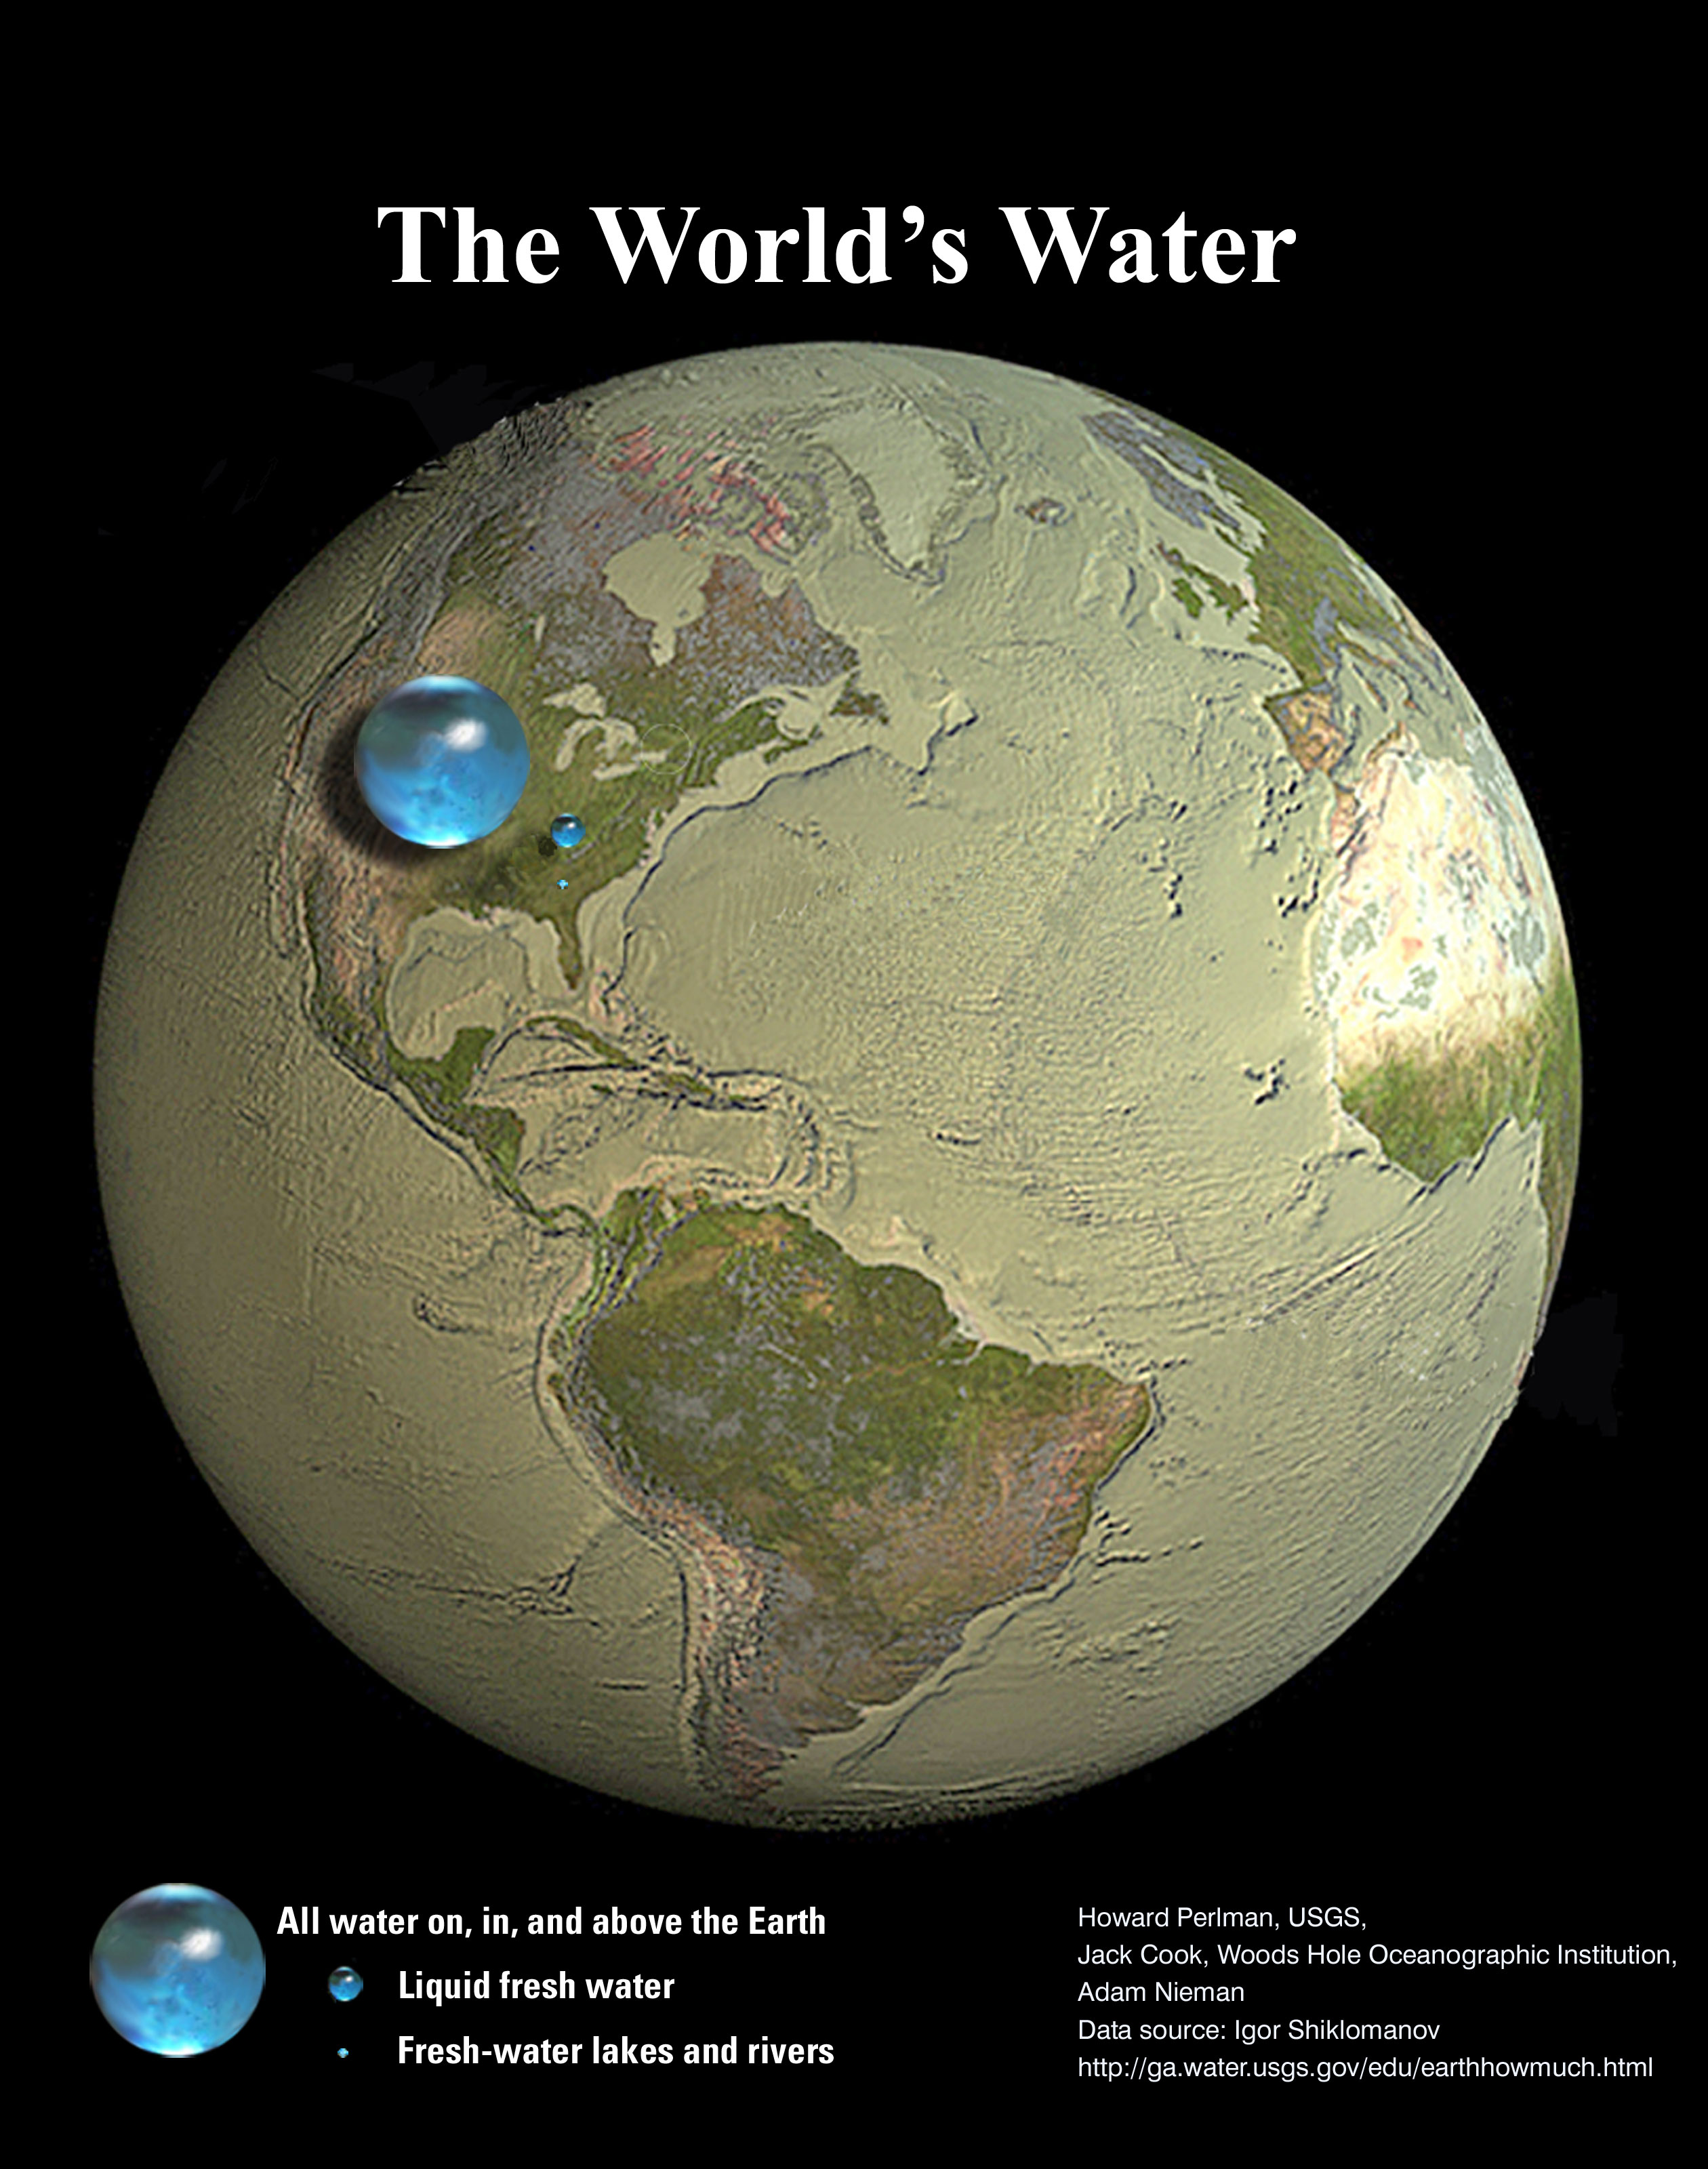 Graphic depicting the earth from space with all of earth's water represented in a single sphere. The sphere's diameter spans part of the United States. The earth's fresh water is represented by a much smaller sphere, roughly 3% the size of the larger sphere.